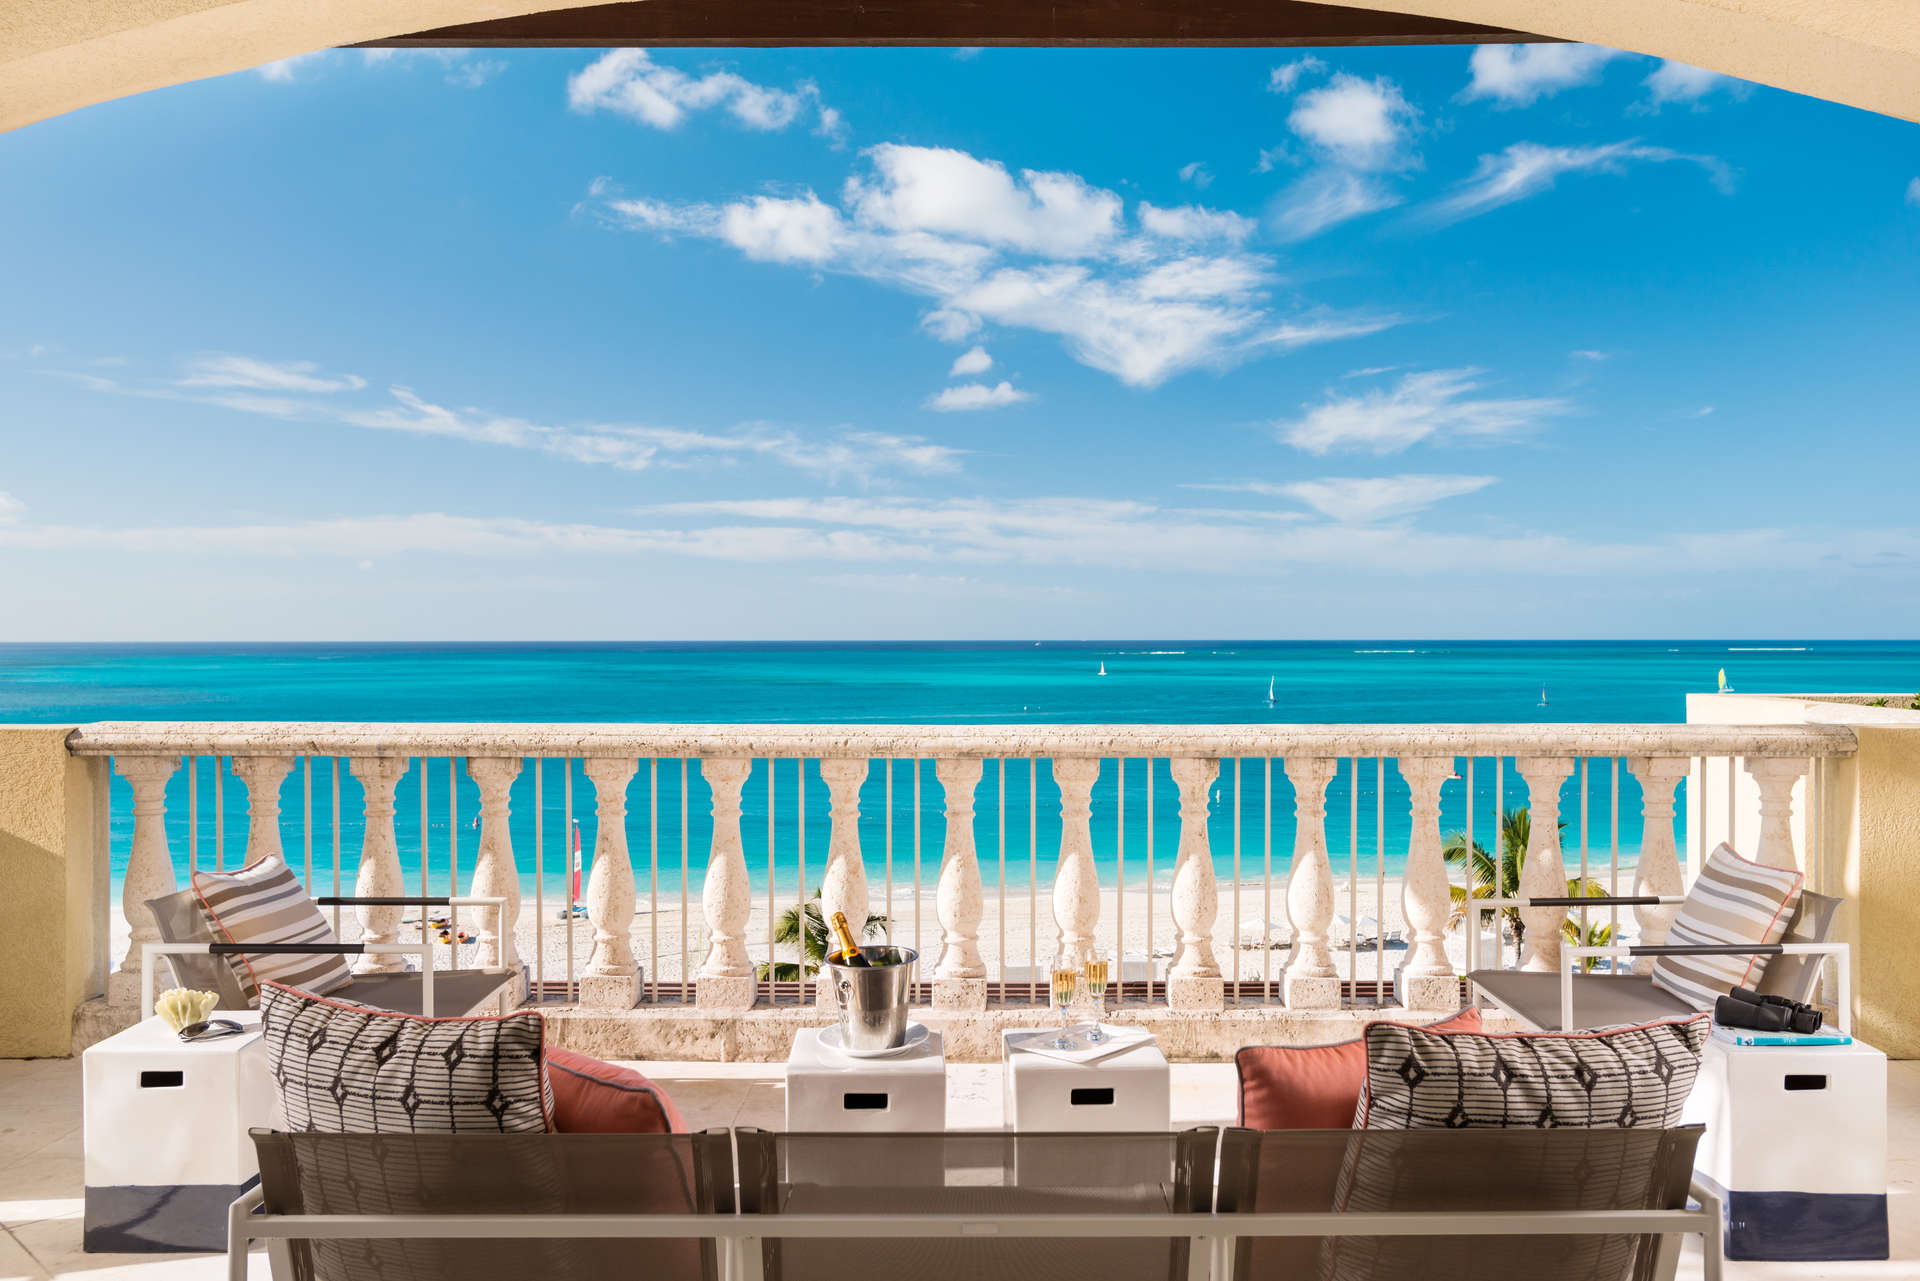 Luxury villa rentals caribbean - Turks and caicos - Providenciales - Grace bay club - Estate Beach Level Residence | 4 BDMS - Image 1/11